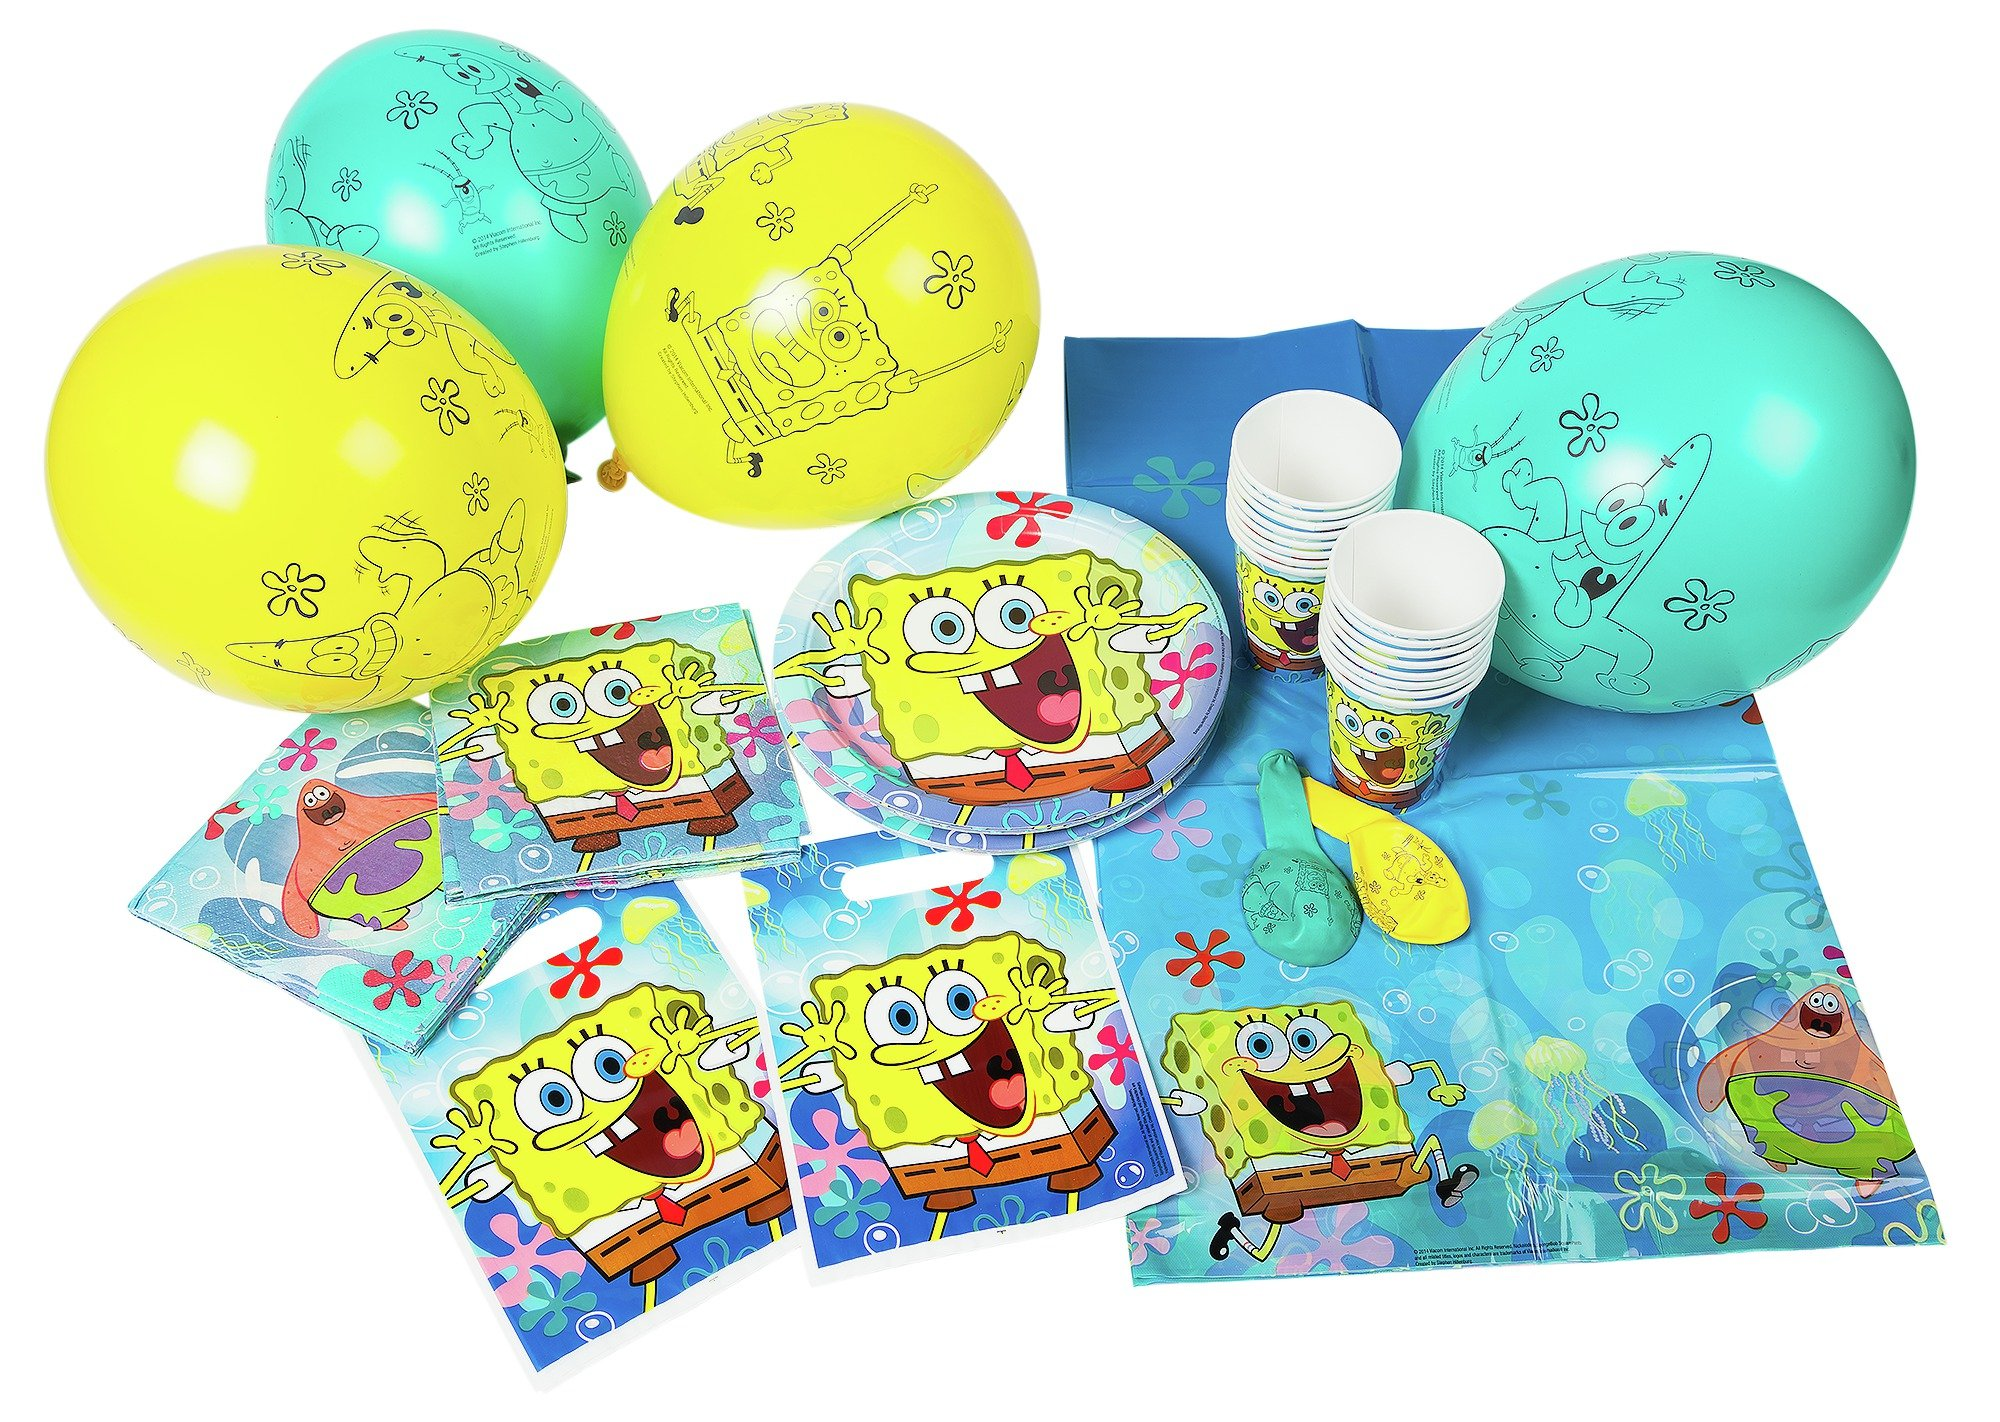 spongebob-square-pants-party-pack-for-16-guests